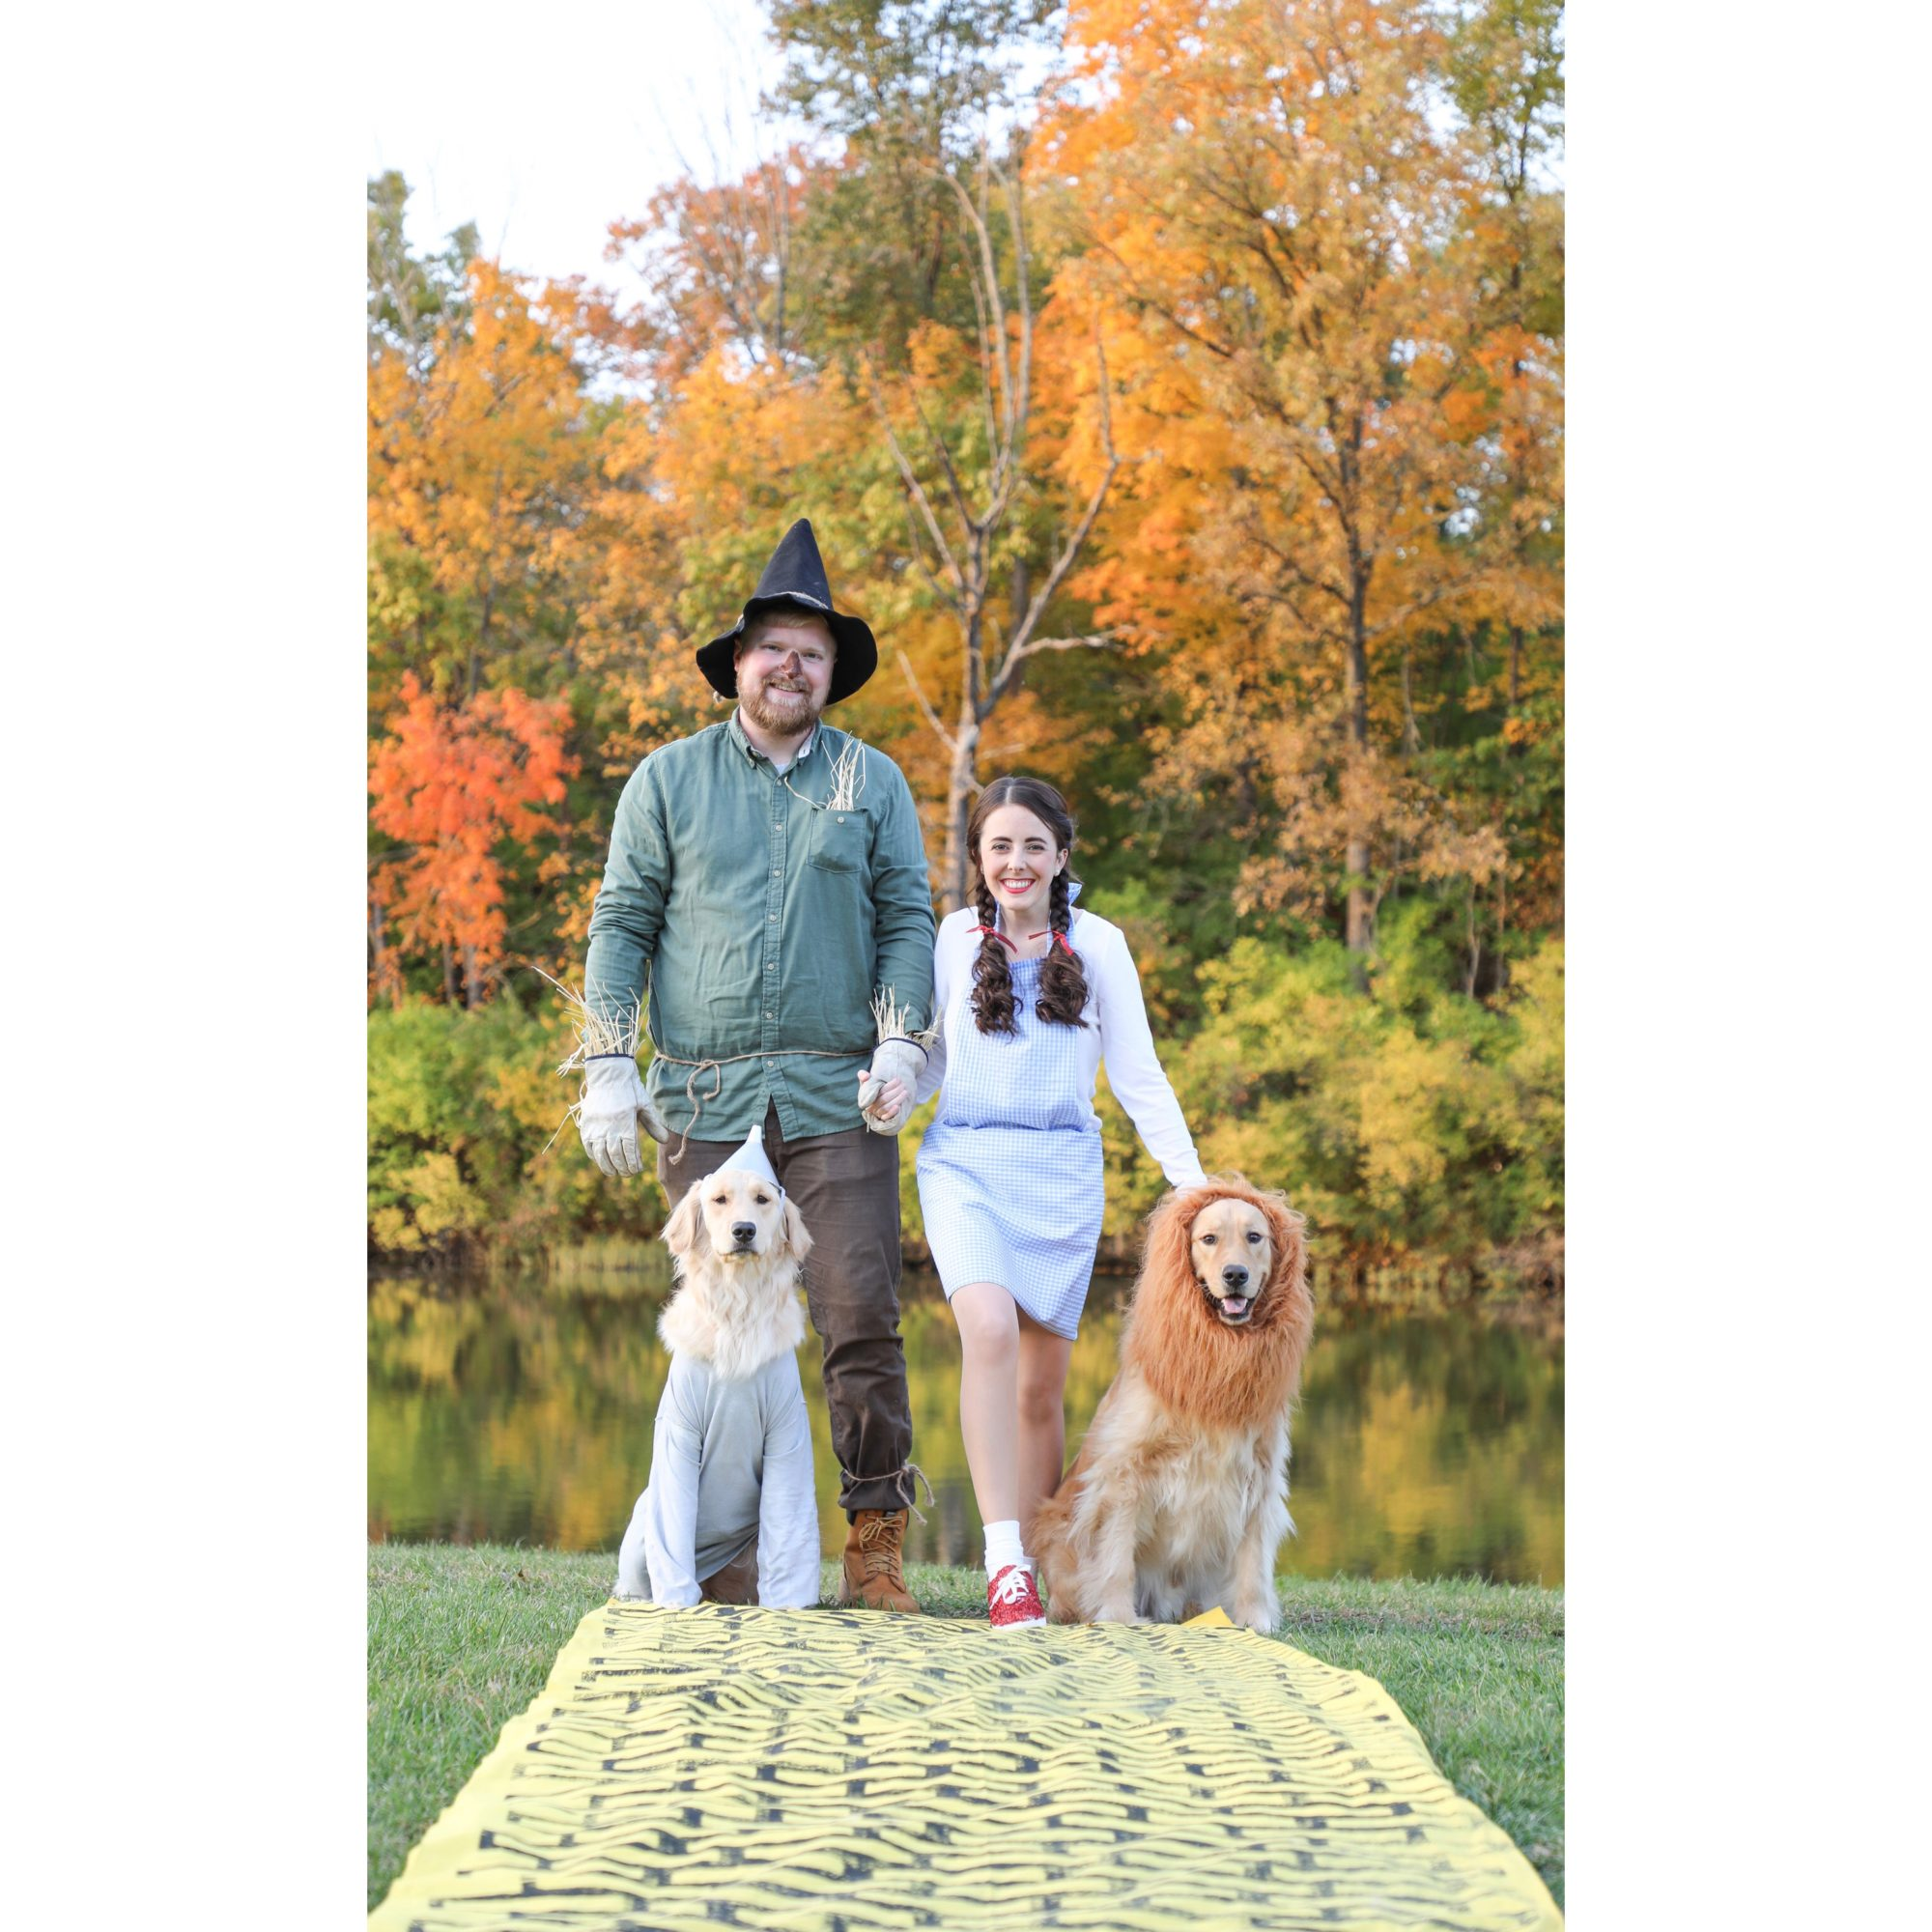 the wizard of oz | halloween costume contest 2018